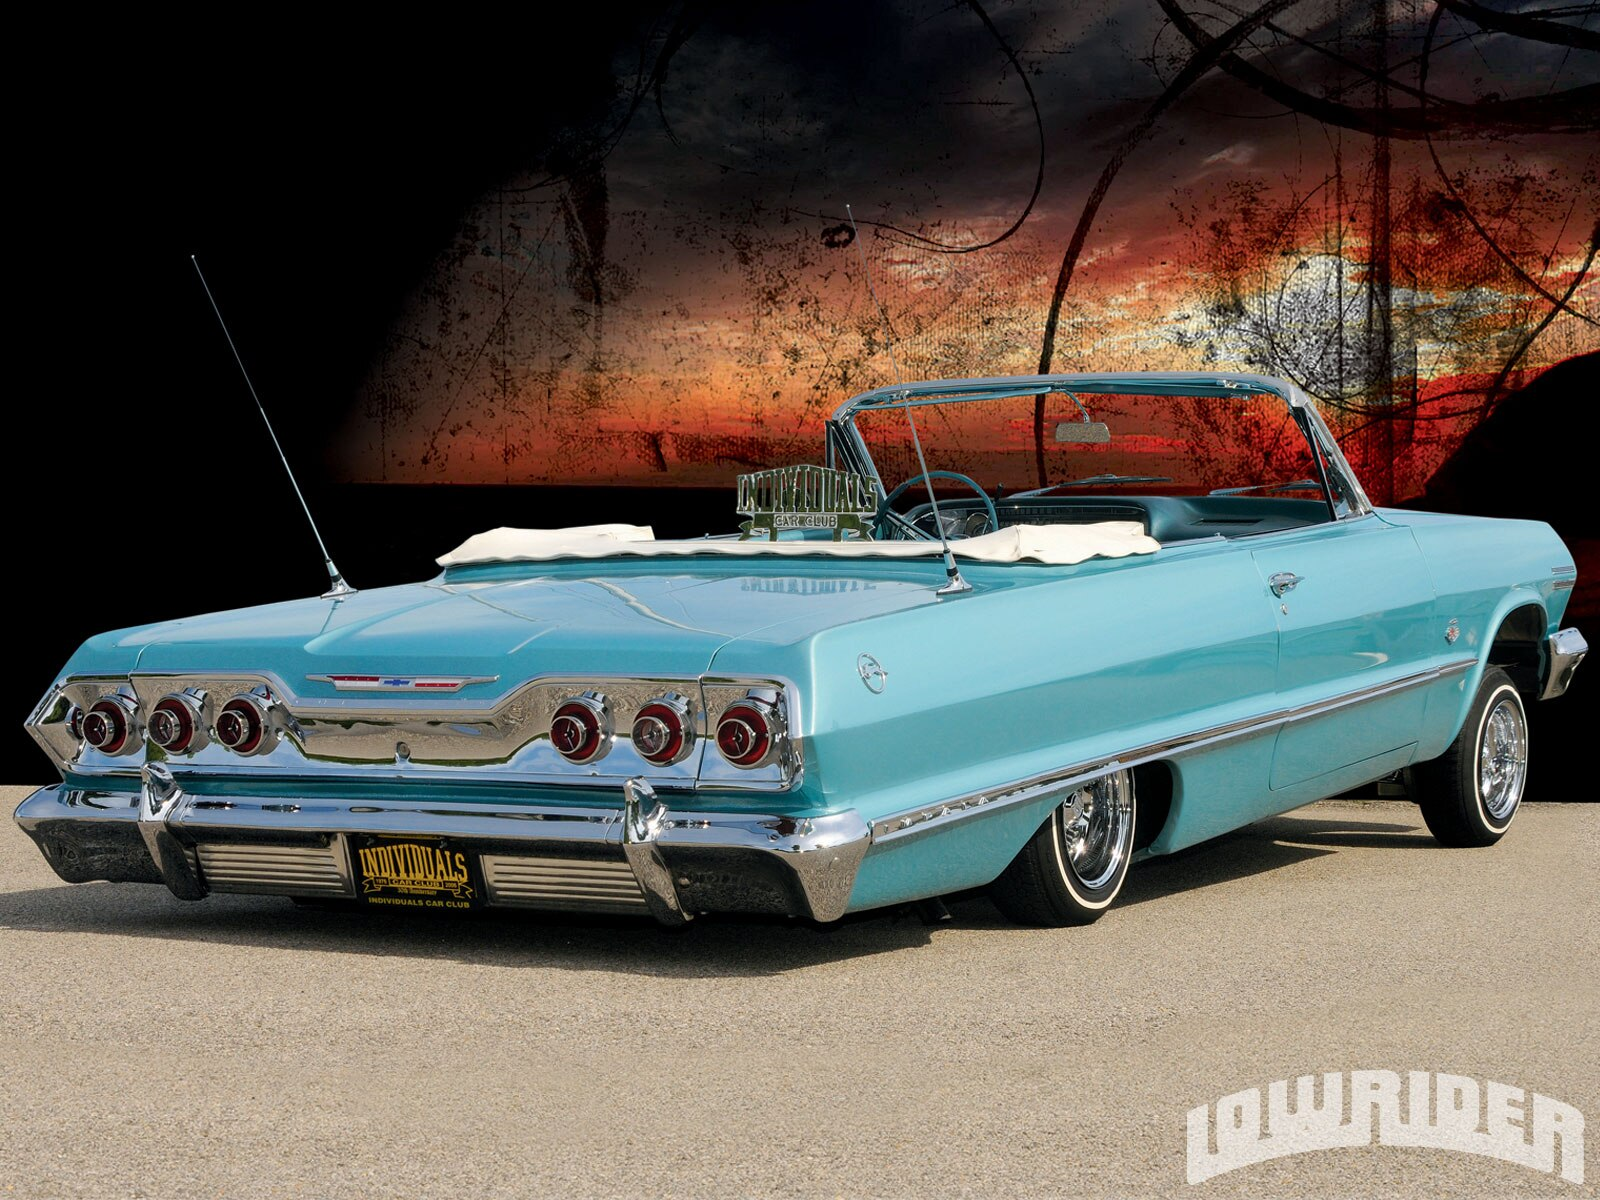 lrmp_1006_01_o-1963_chevy_impala-rear3